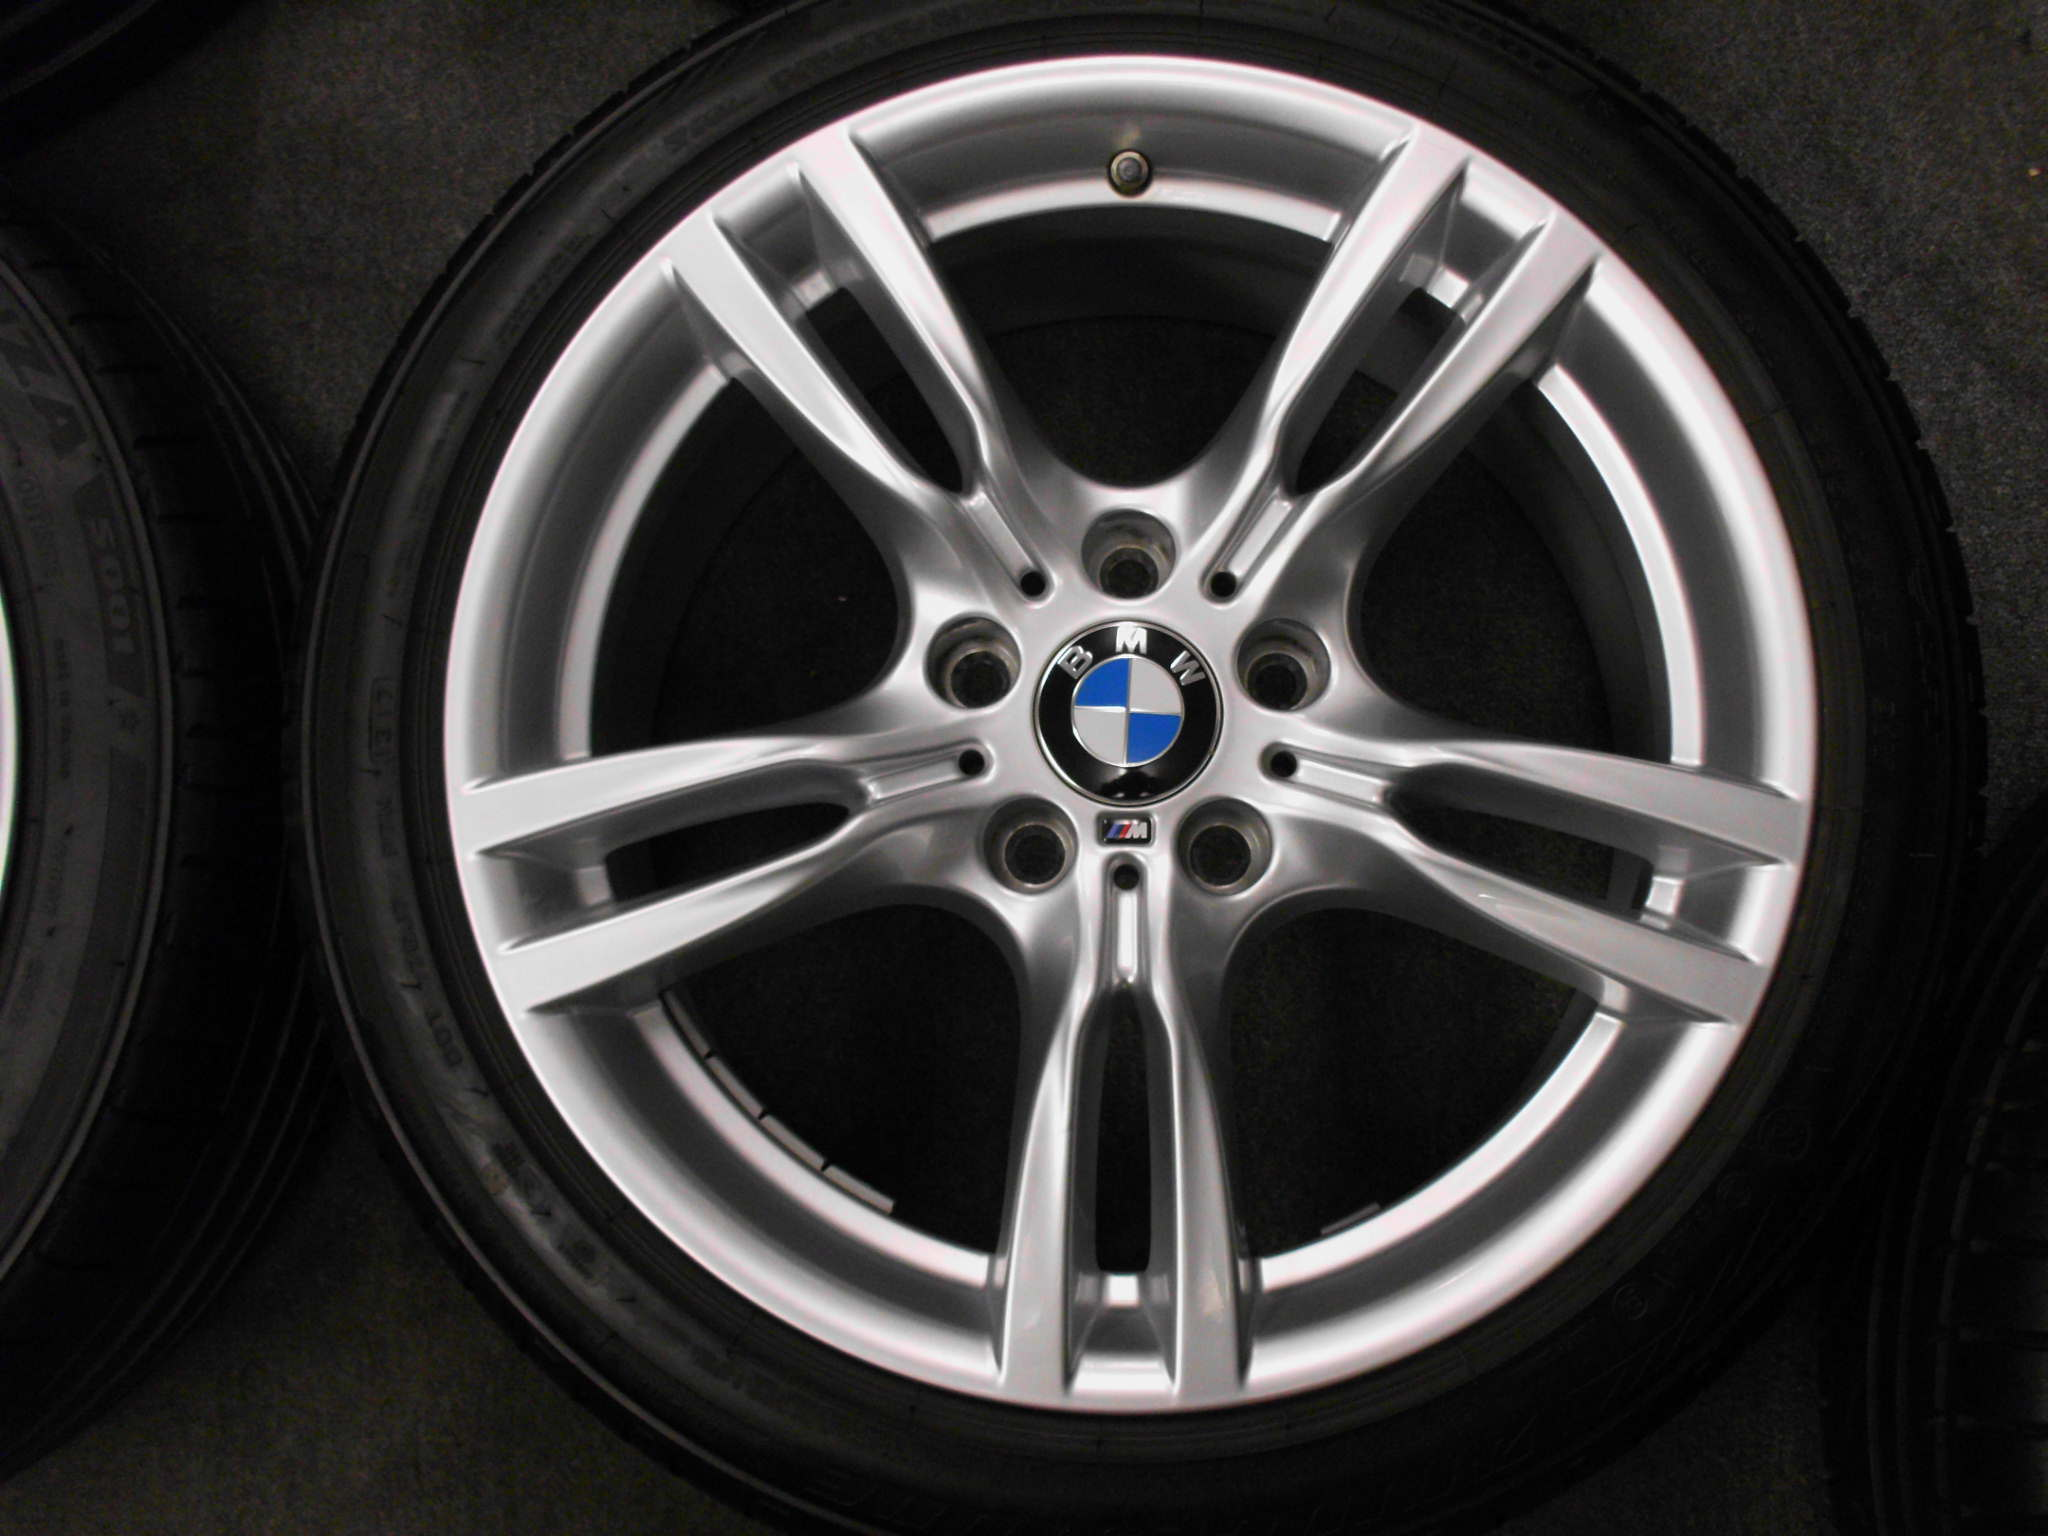 "USED 18"" GENUINE STYLE 400 M SPORT ALLOYS,WIDER REARS,EXCELLENT UNMARKED, INC VG BRIDGESTONE RUNFLAT TYRES + TPMS"